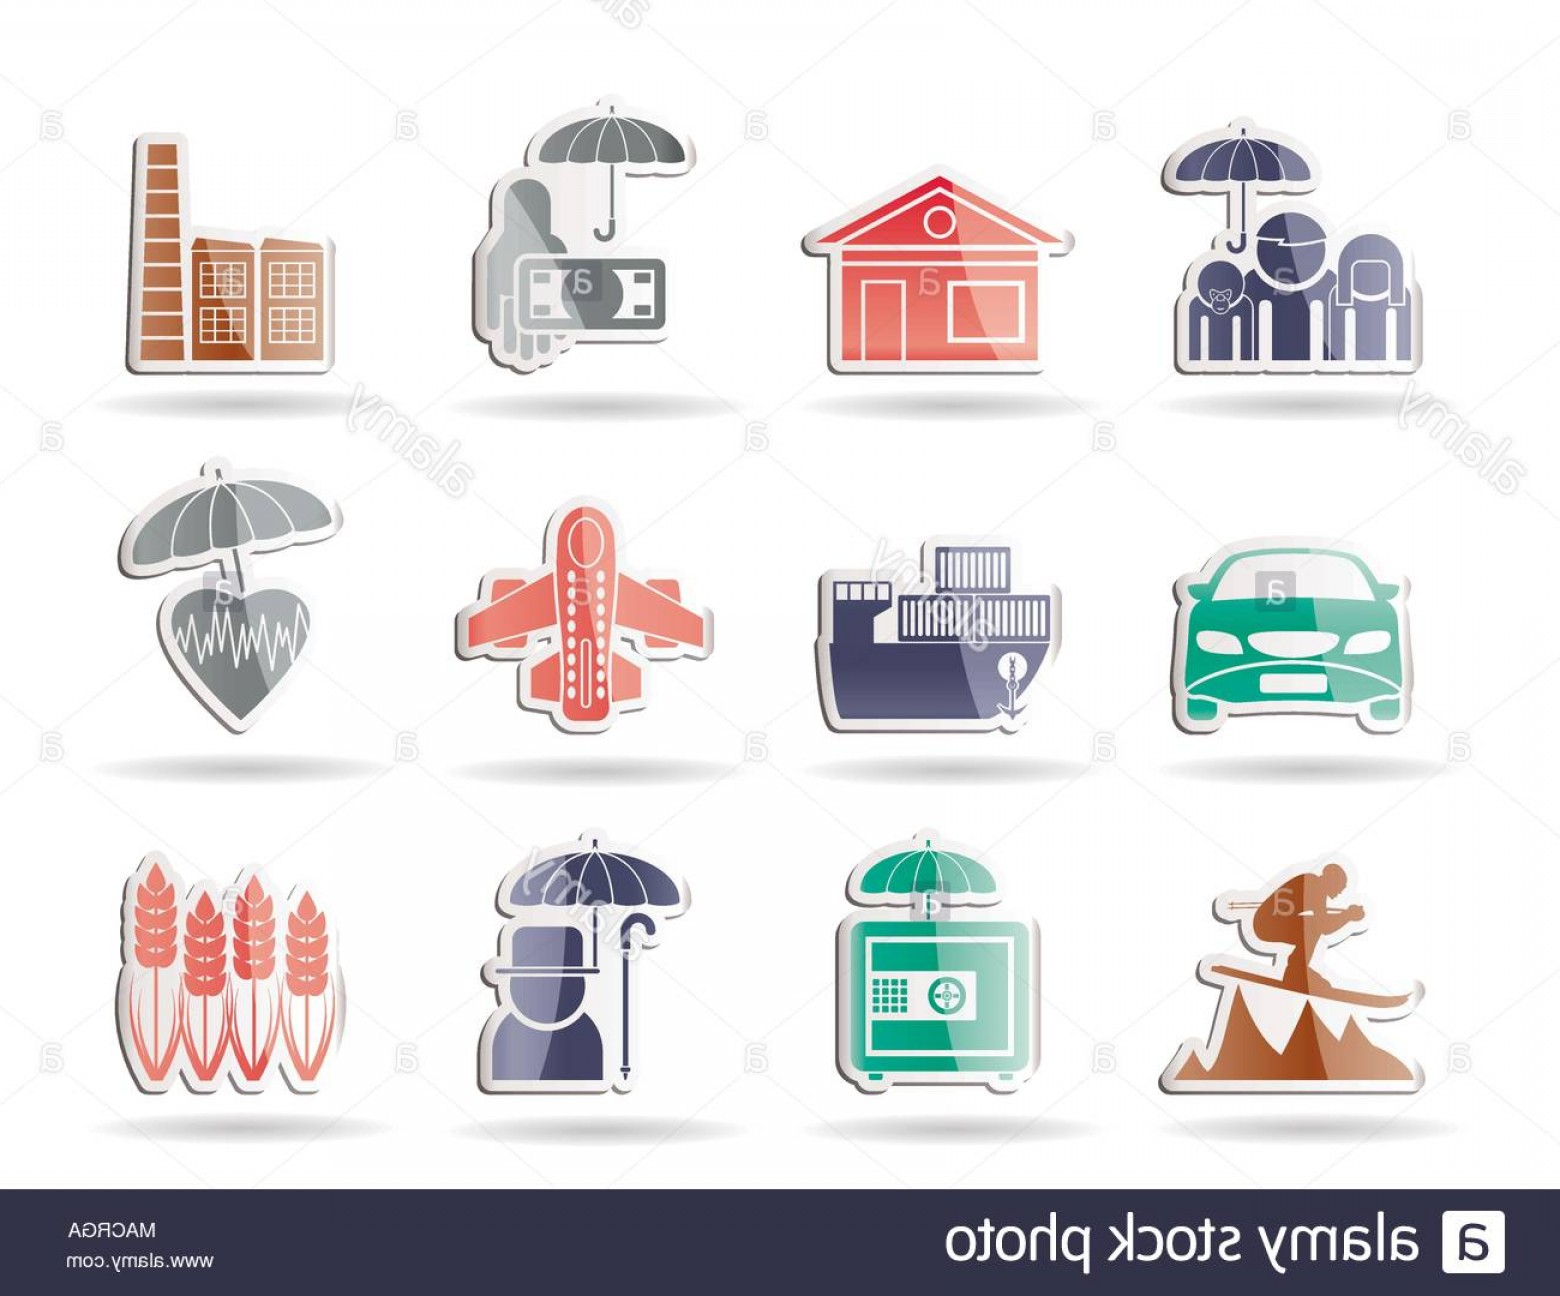 Vector Insurance: Different Kind Of Insurance And Risk Icons Vector Icon Set Image